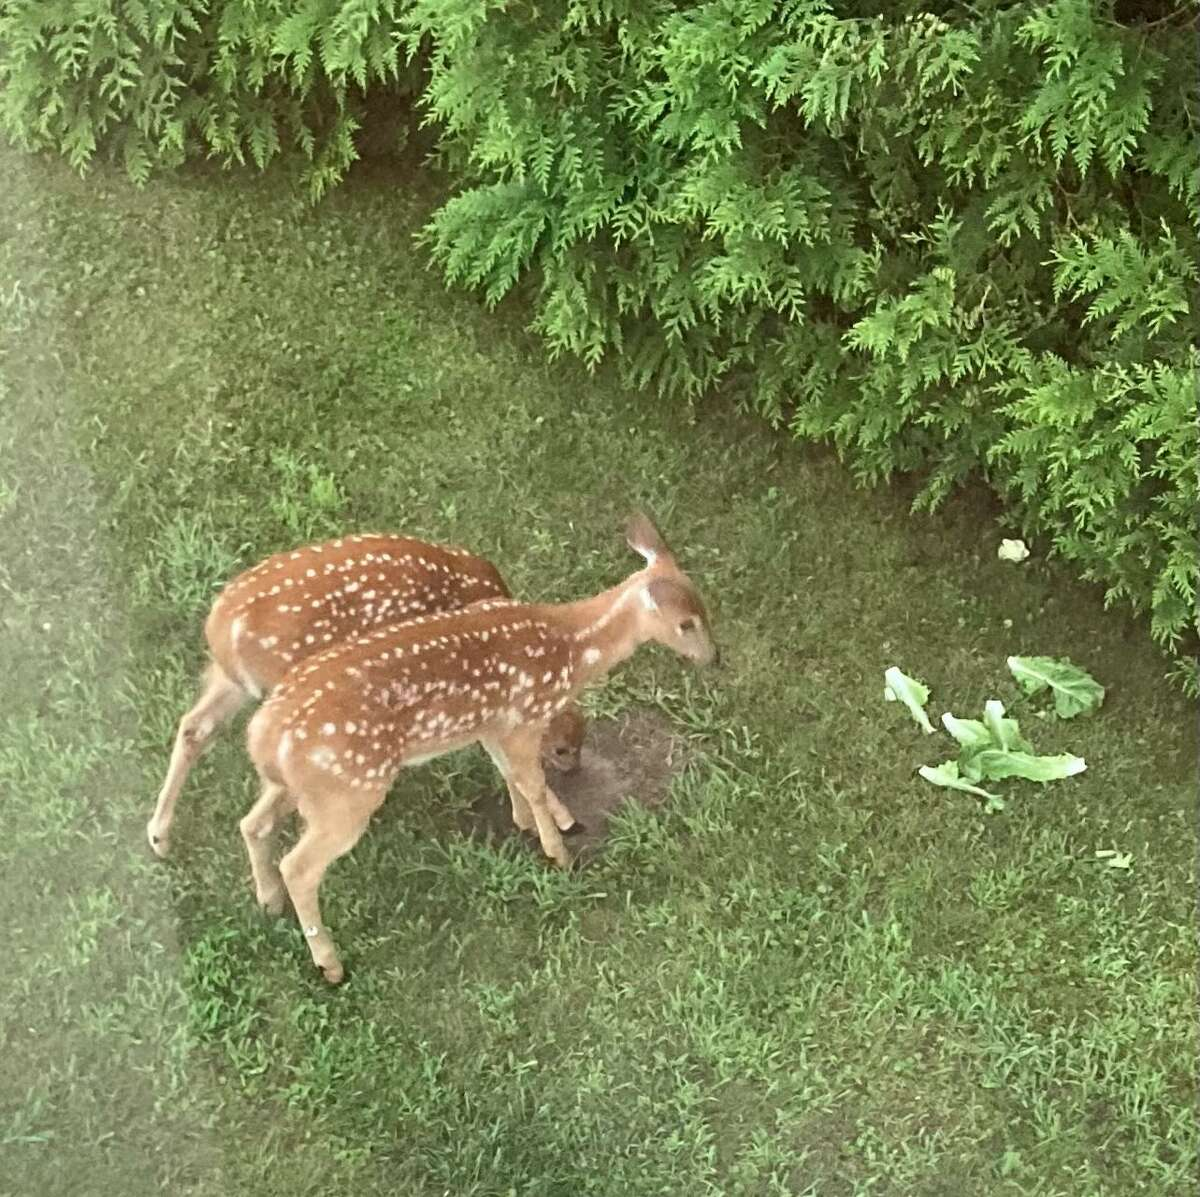 Though EHD cannot infect humans, it causes fever and hemorrhaging in deer, which can appear lame or dehydrated and often seek out water sources before perishing. Deer can die within 36 hours of infection, according to the DEC.